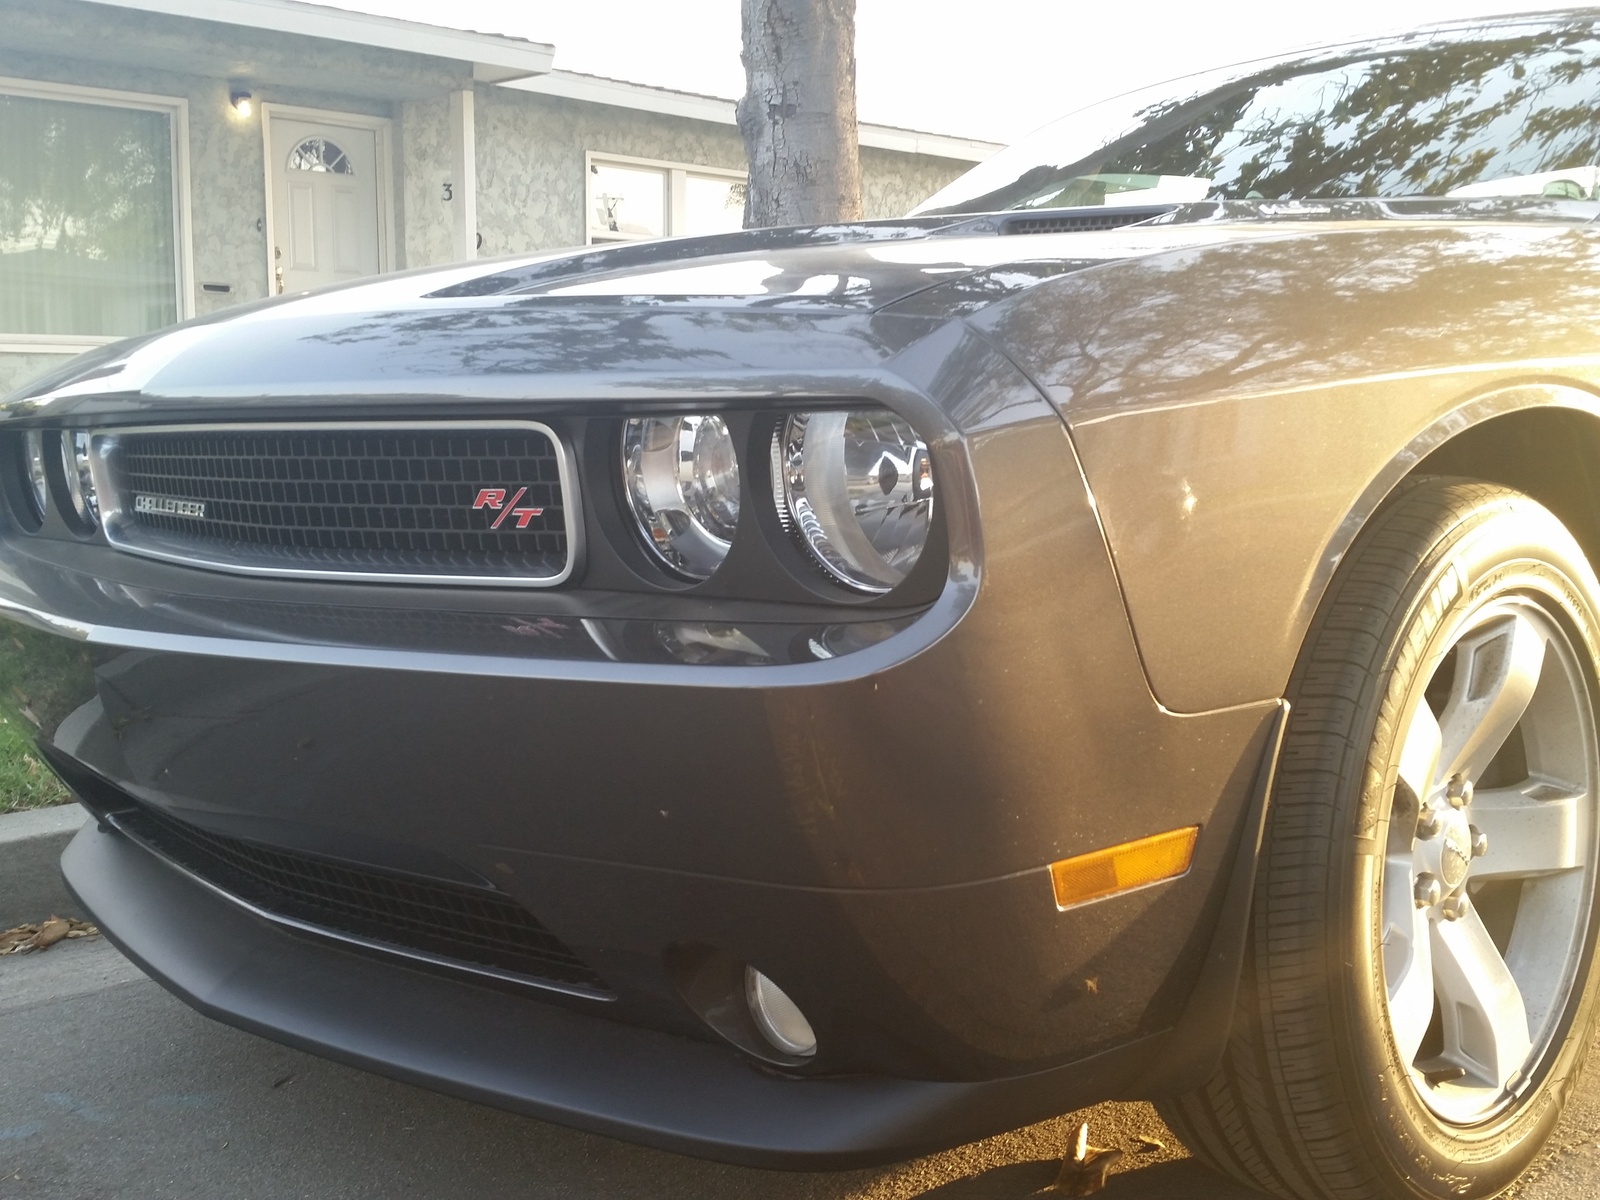 Picture of 2014 Dodge Challenger R/T